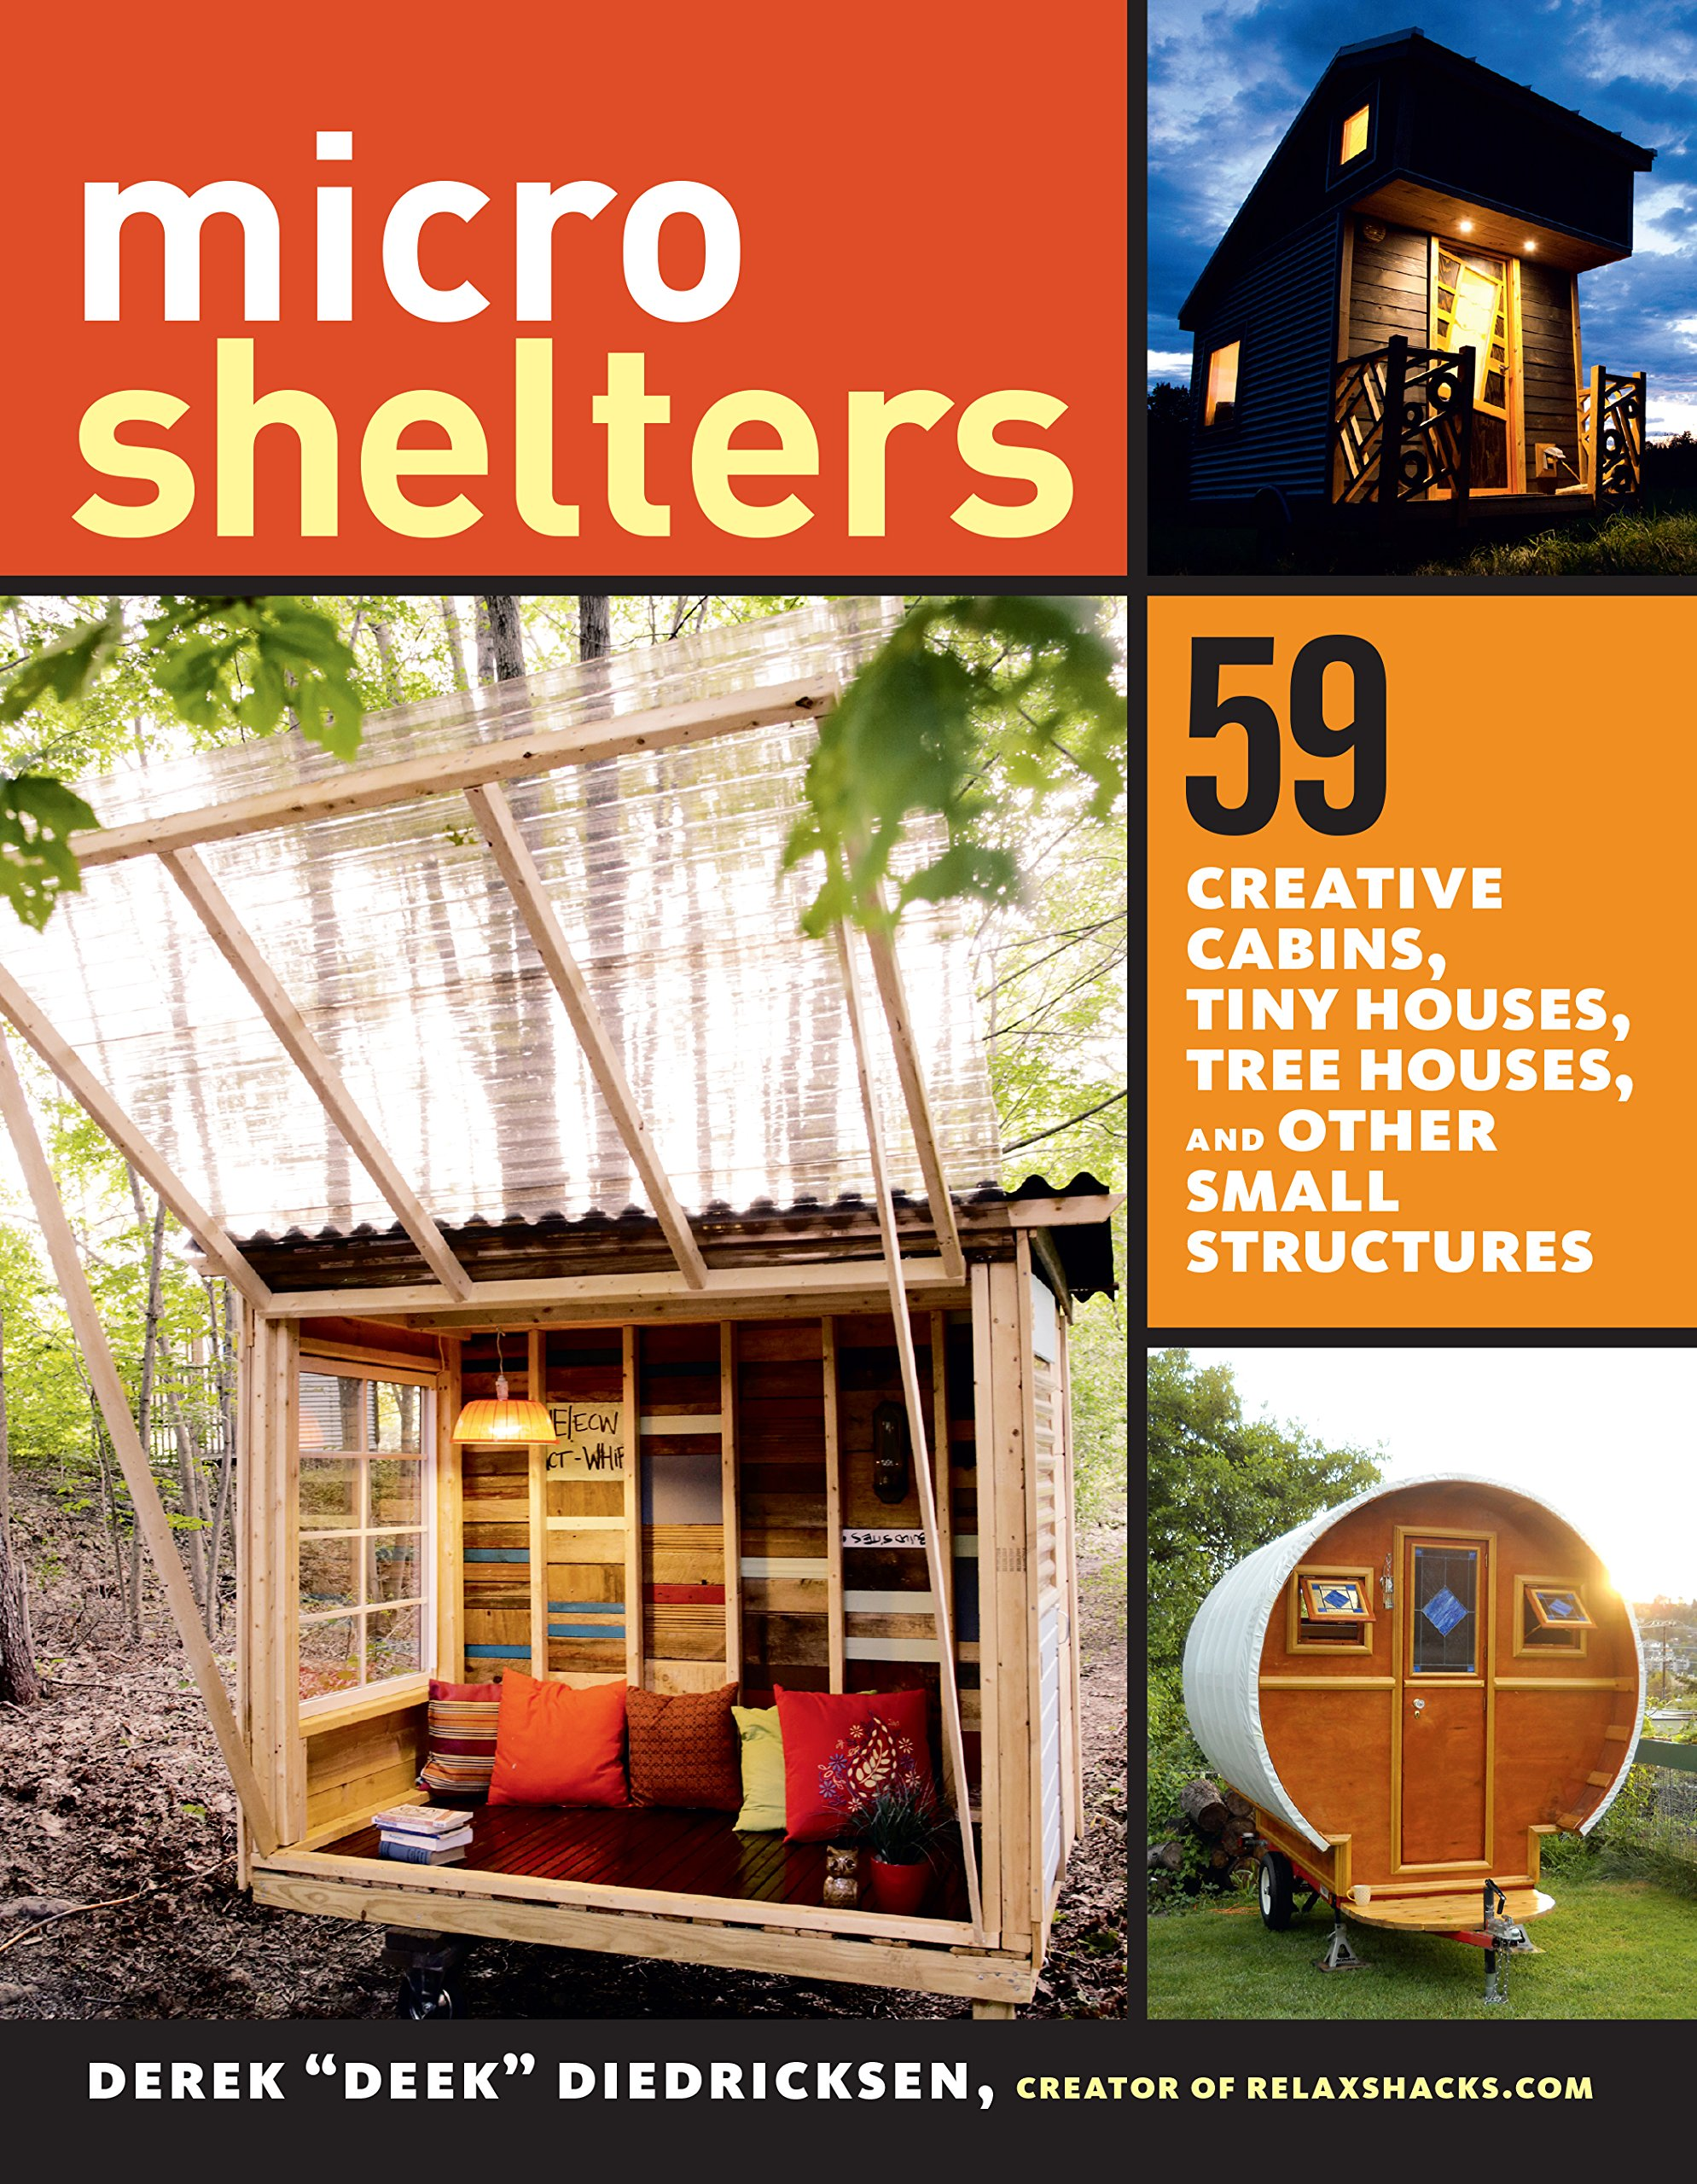 Microshelters Creative Cabins Houses Structures product image